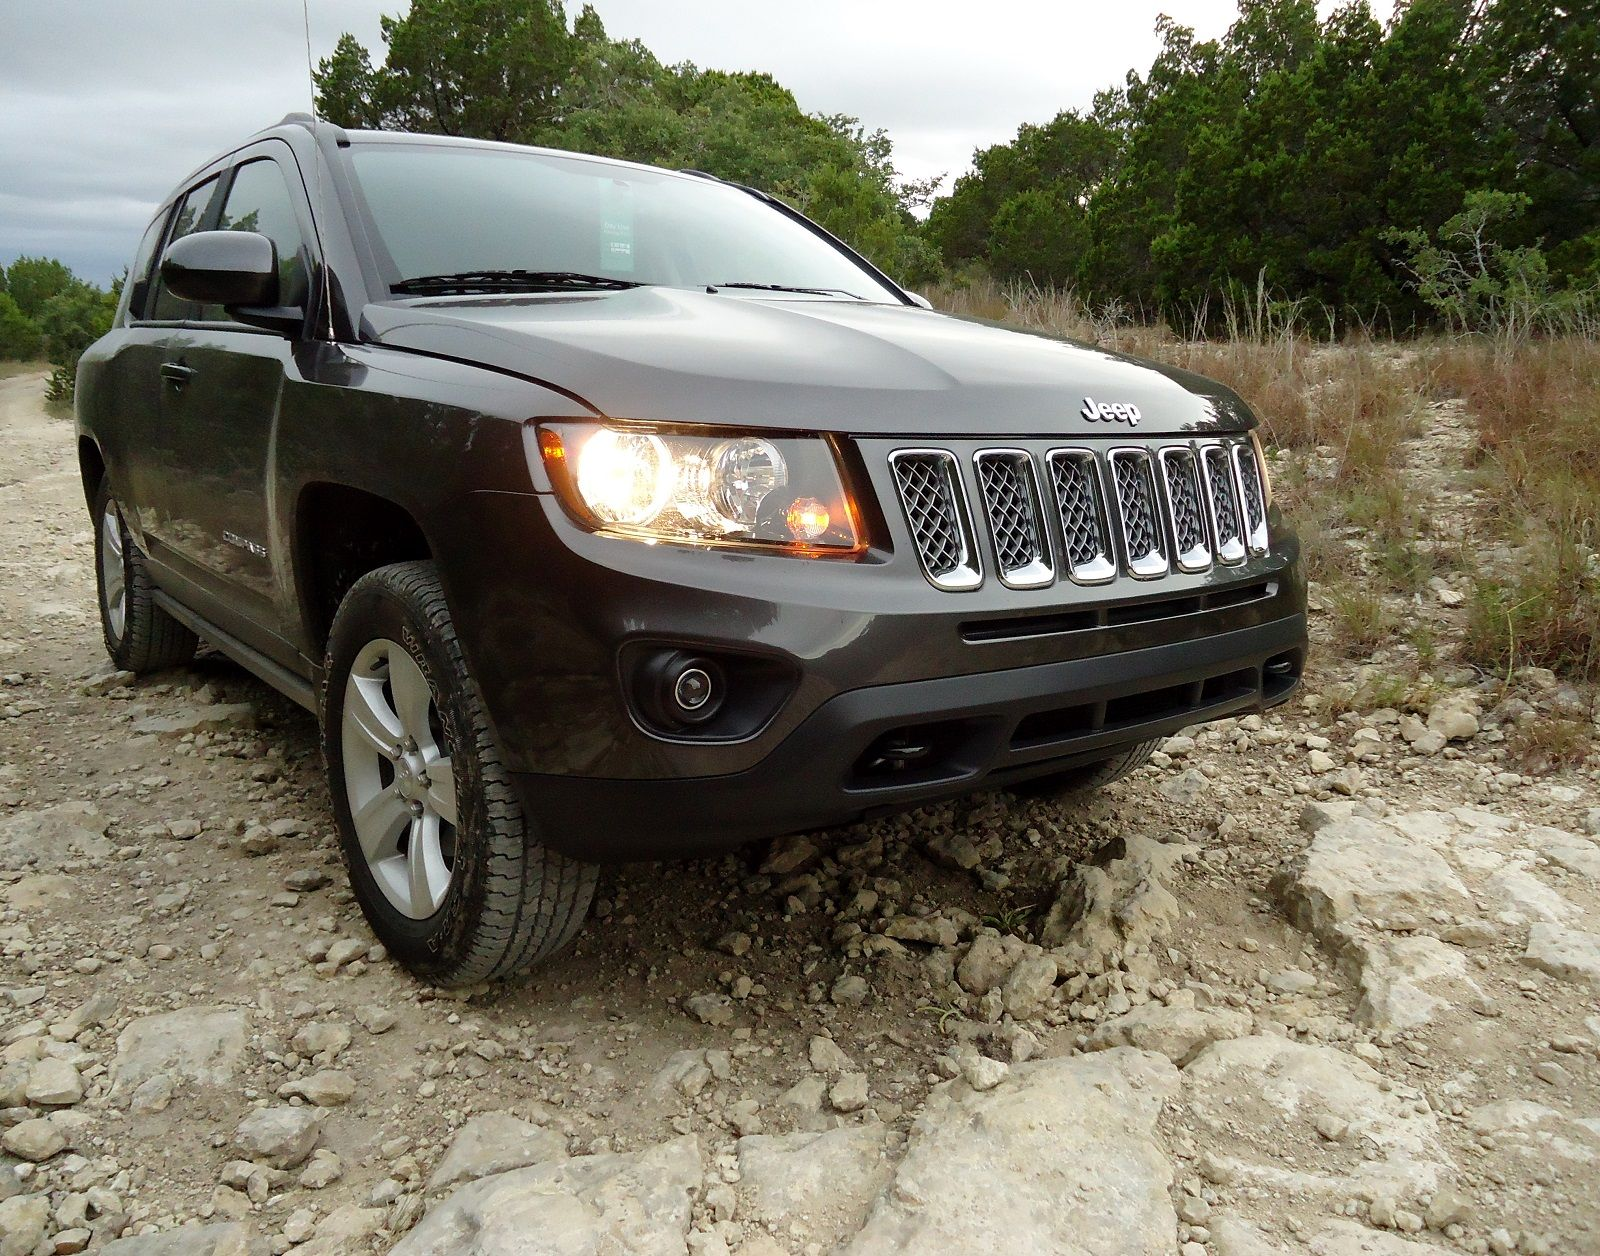 Reviews The 2014 Compass Latitude 4x4 4x4 Jeep 4x4 Trail Rated Jeep